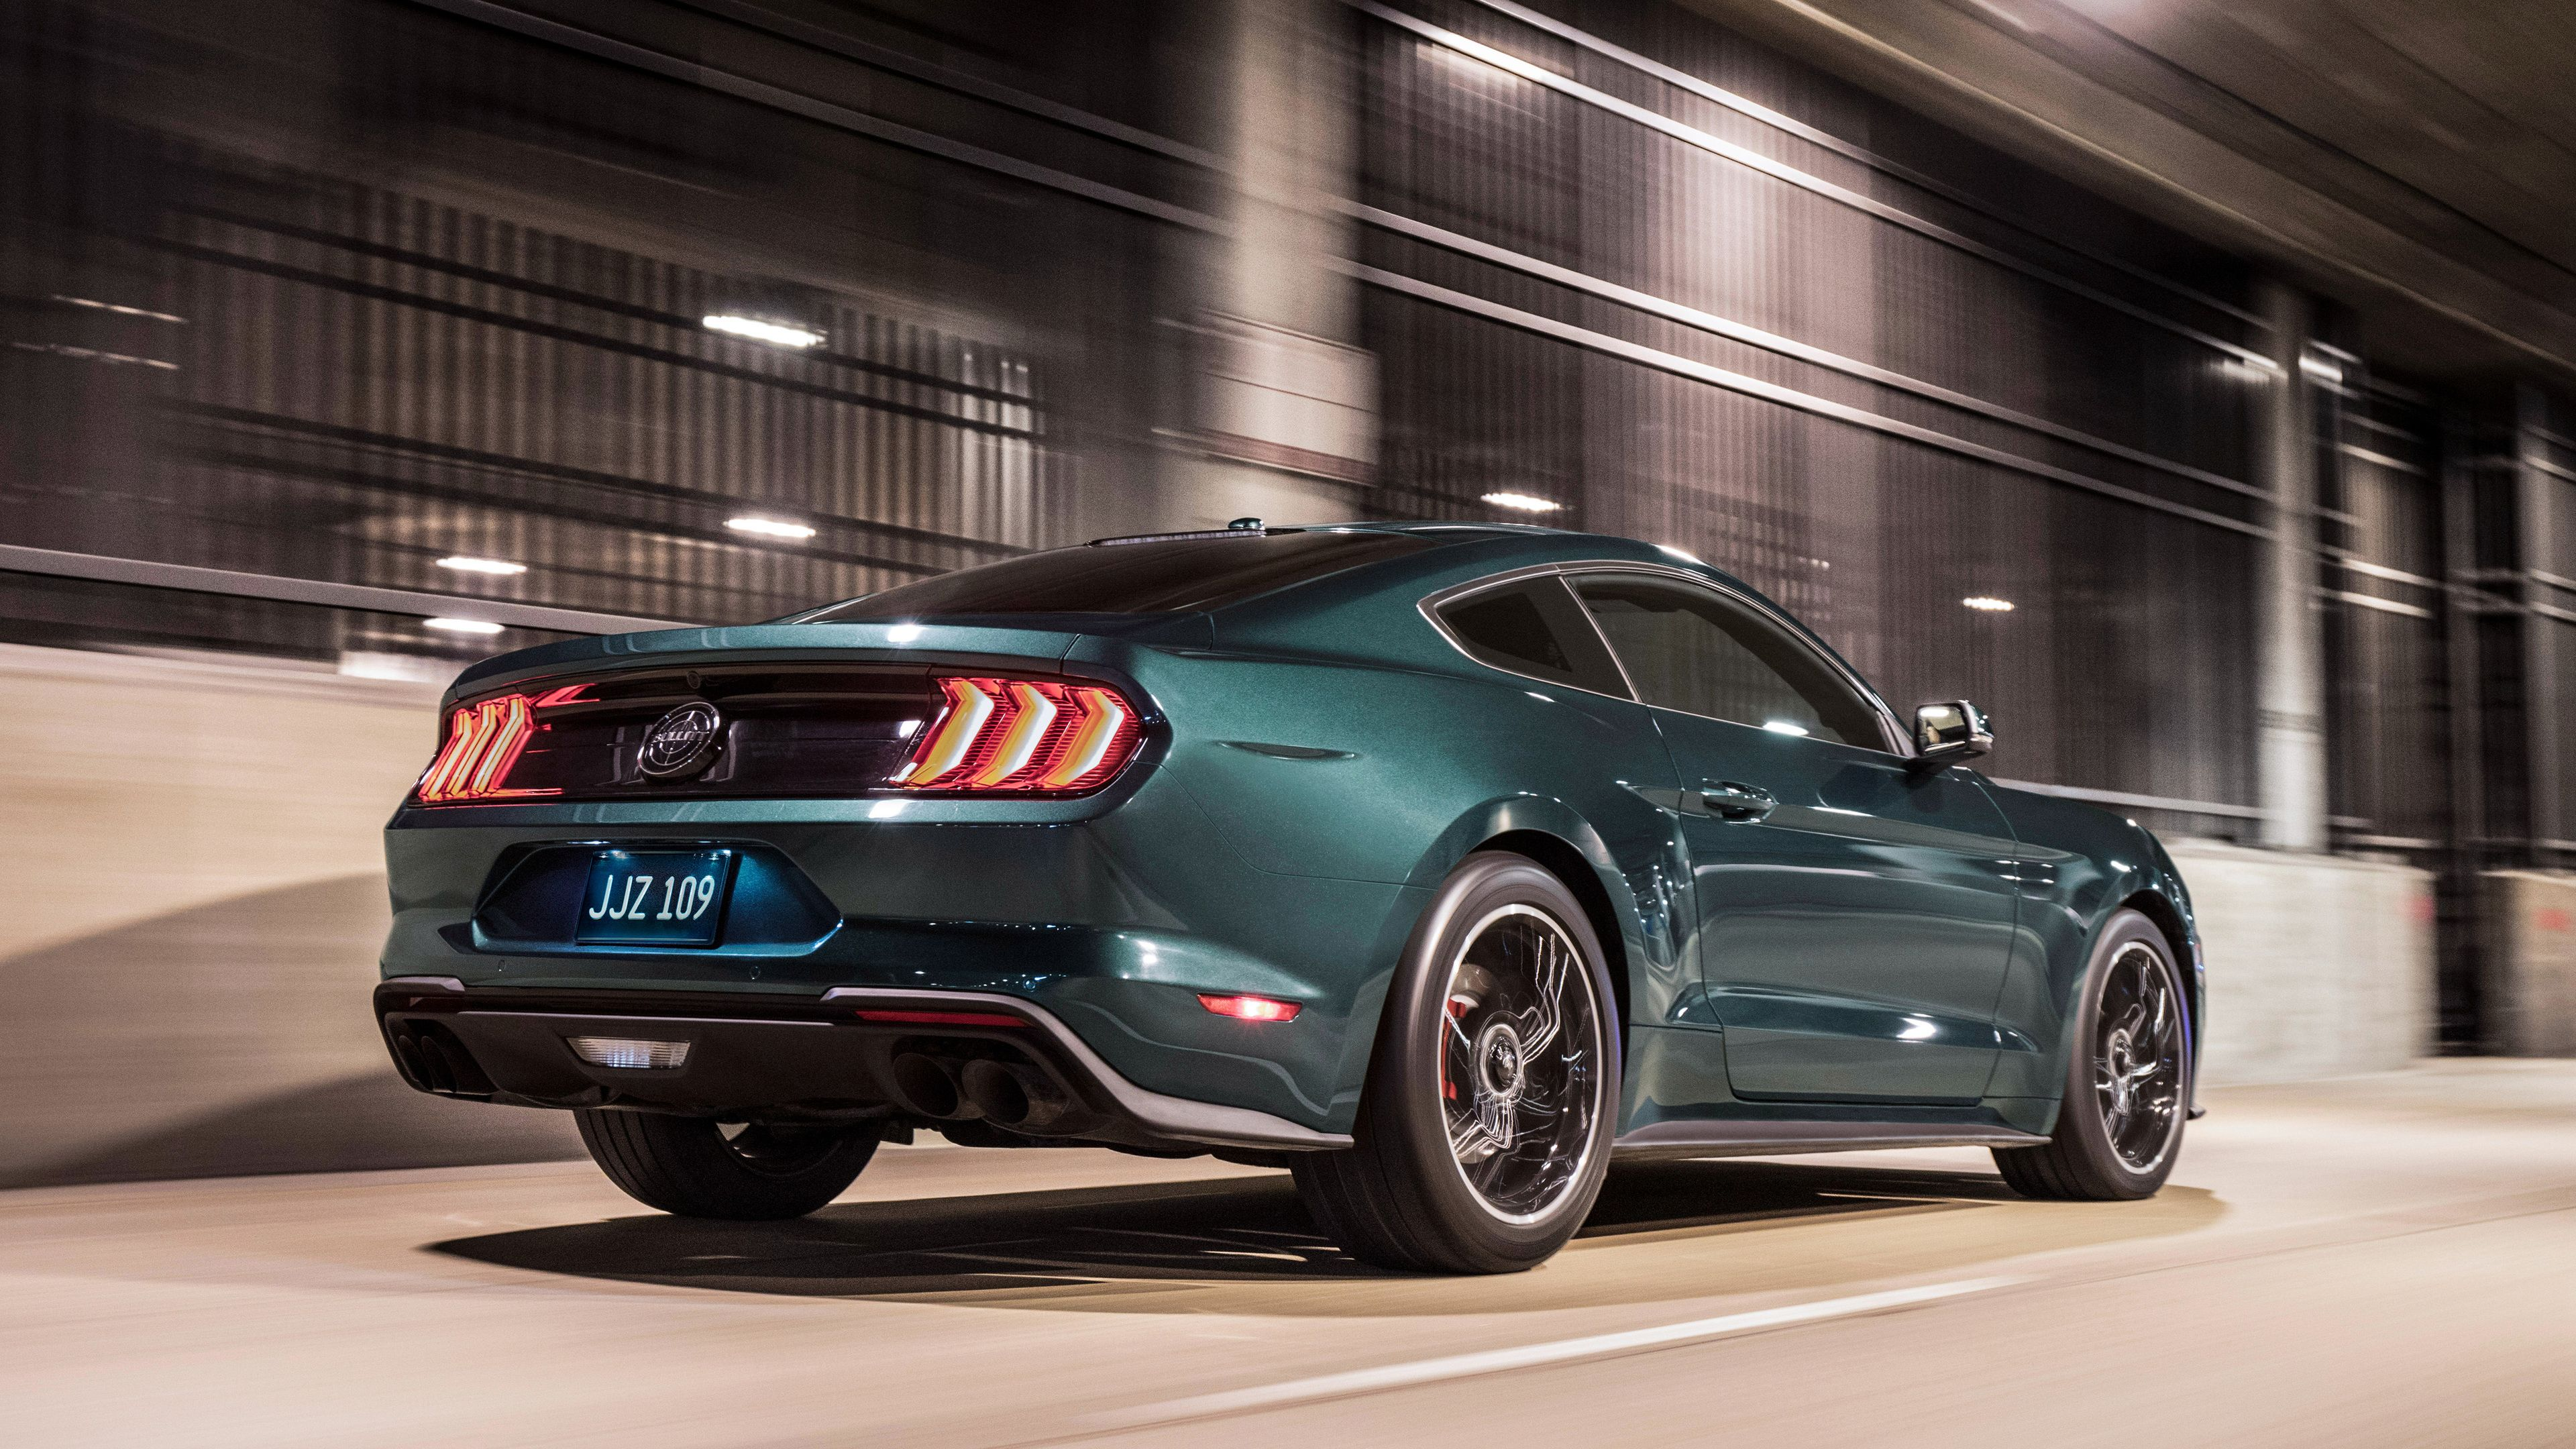 Wallpaper 4k 2019 Ford Mustang Bullitt Rear 4k 2019 Cars